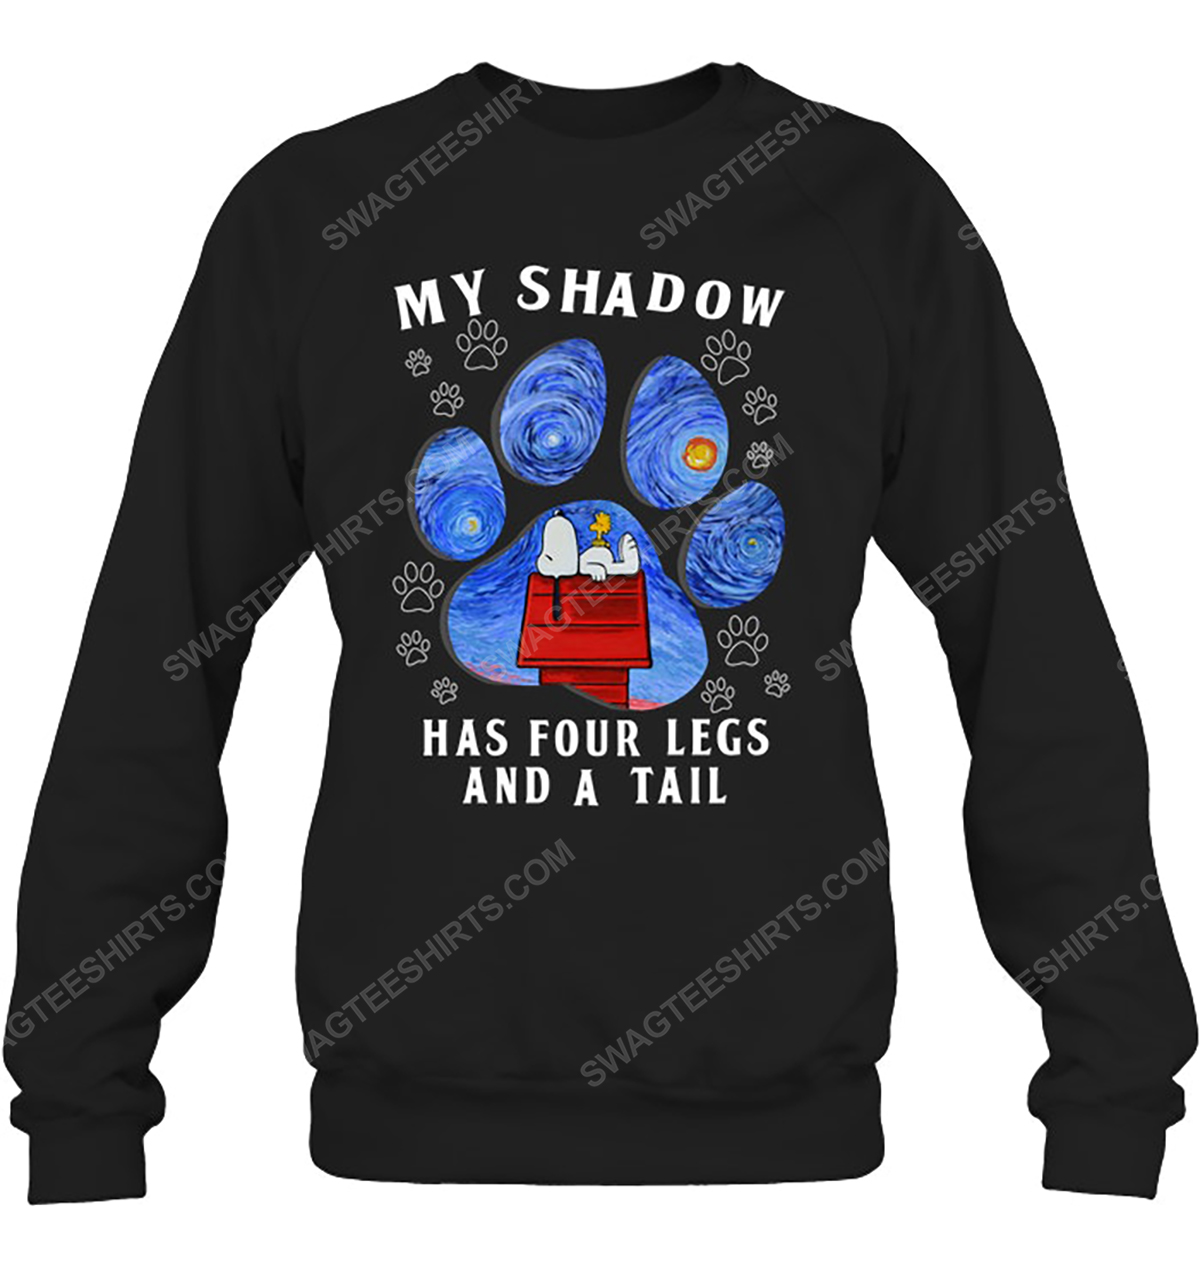 The starry night snoopy my shadow has 4 legs and a tail sweatshirt 1